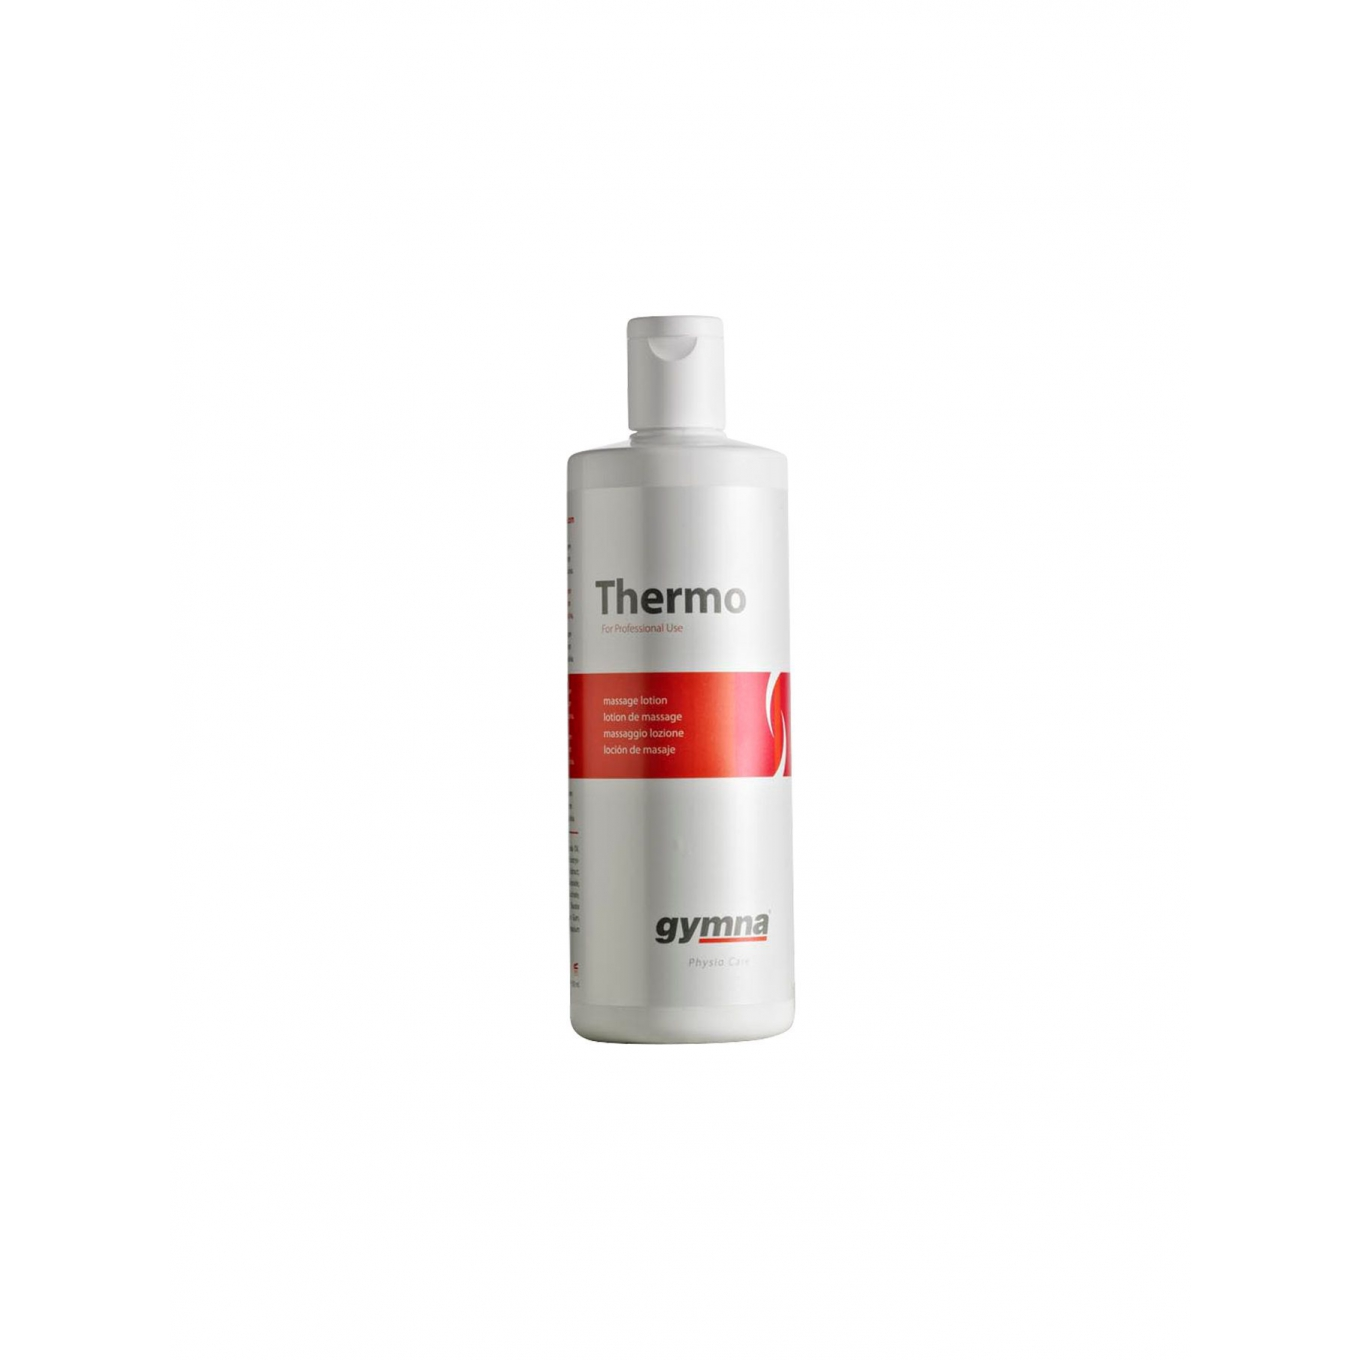 Physio Care Thermo massagelotion - 500 ml